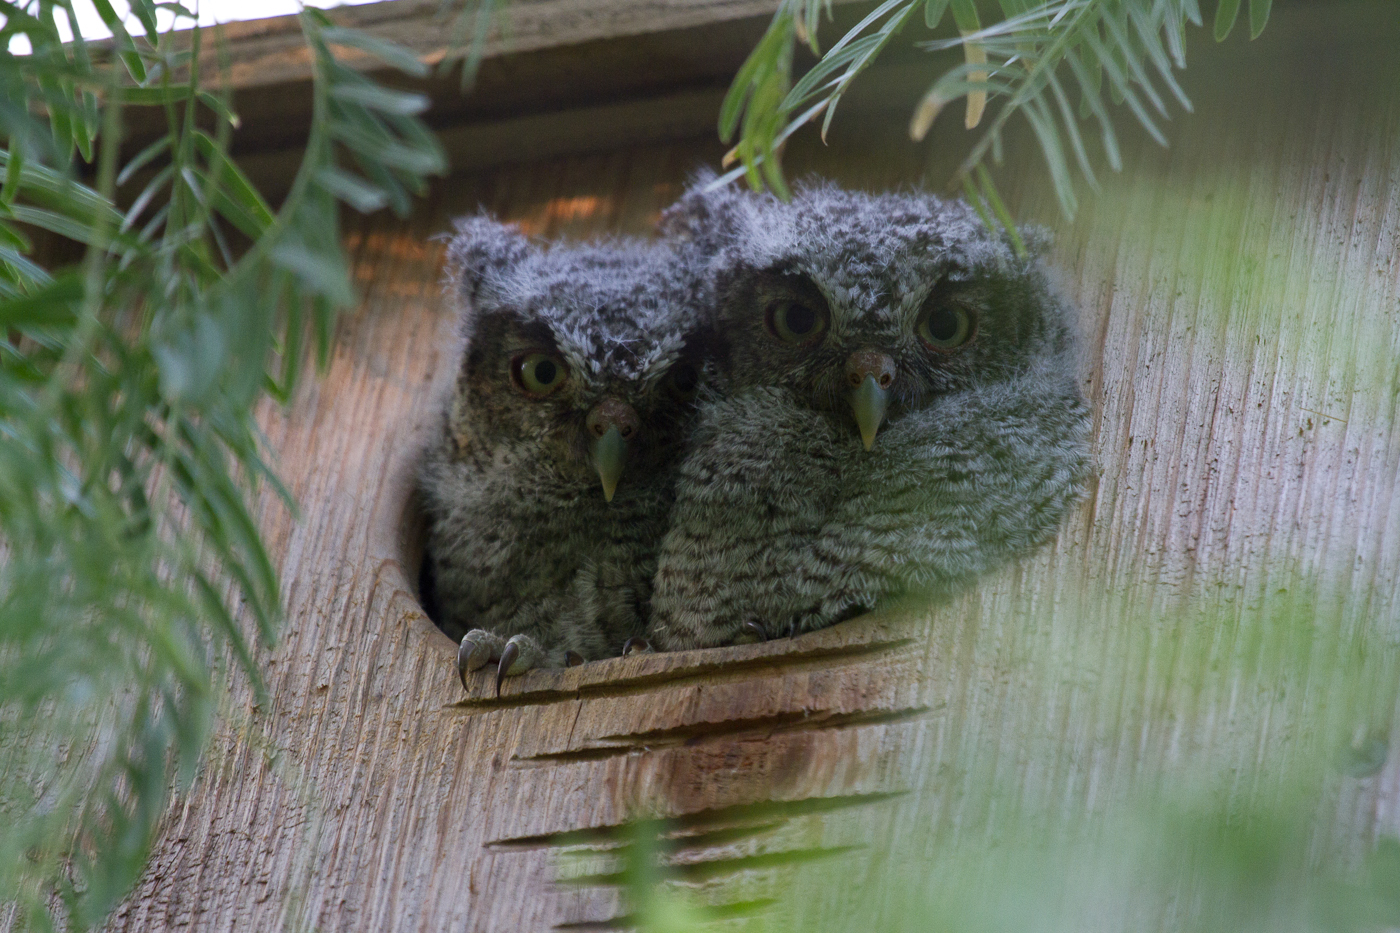 Two baby Eastern Screech Owls.